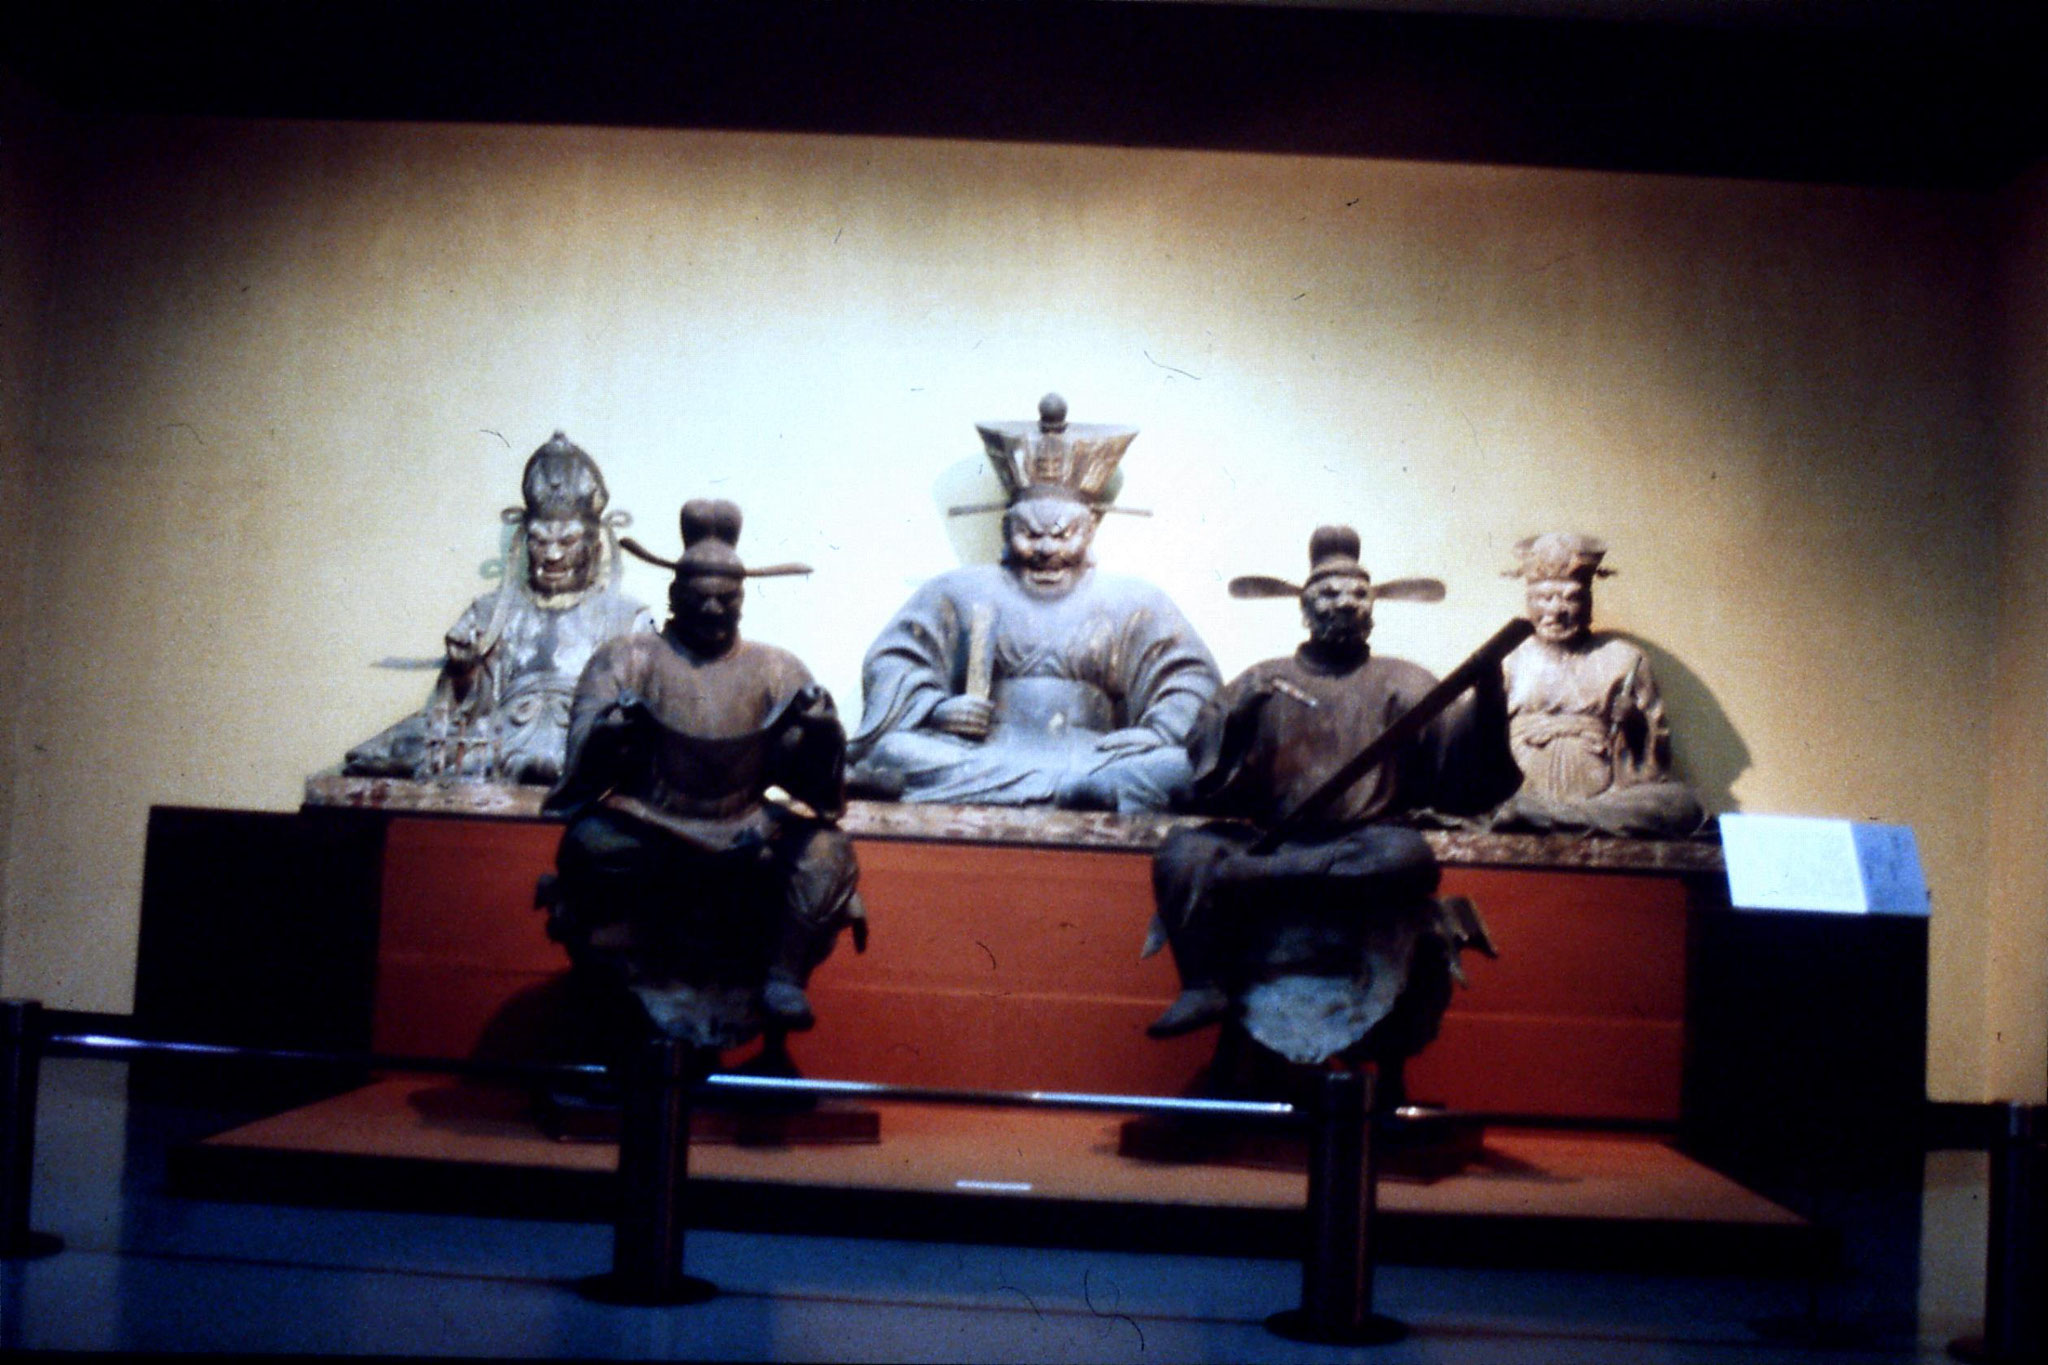 26/1/1989: 6: Kyoto 5 statues in museum